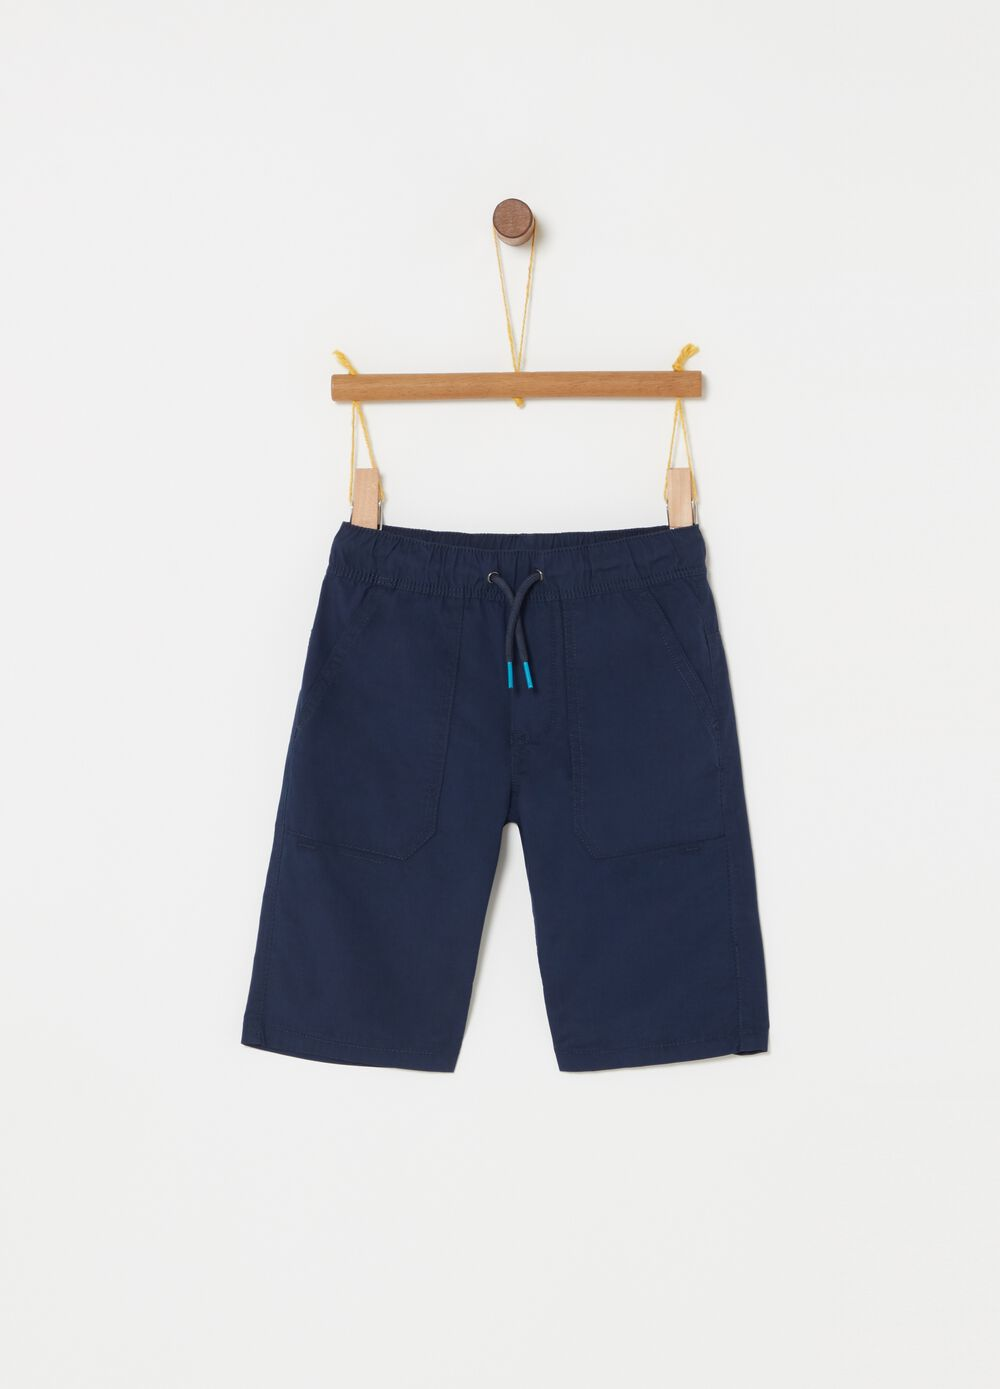 Poplin shorts with functional pockets